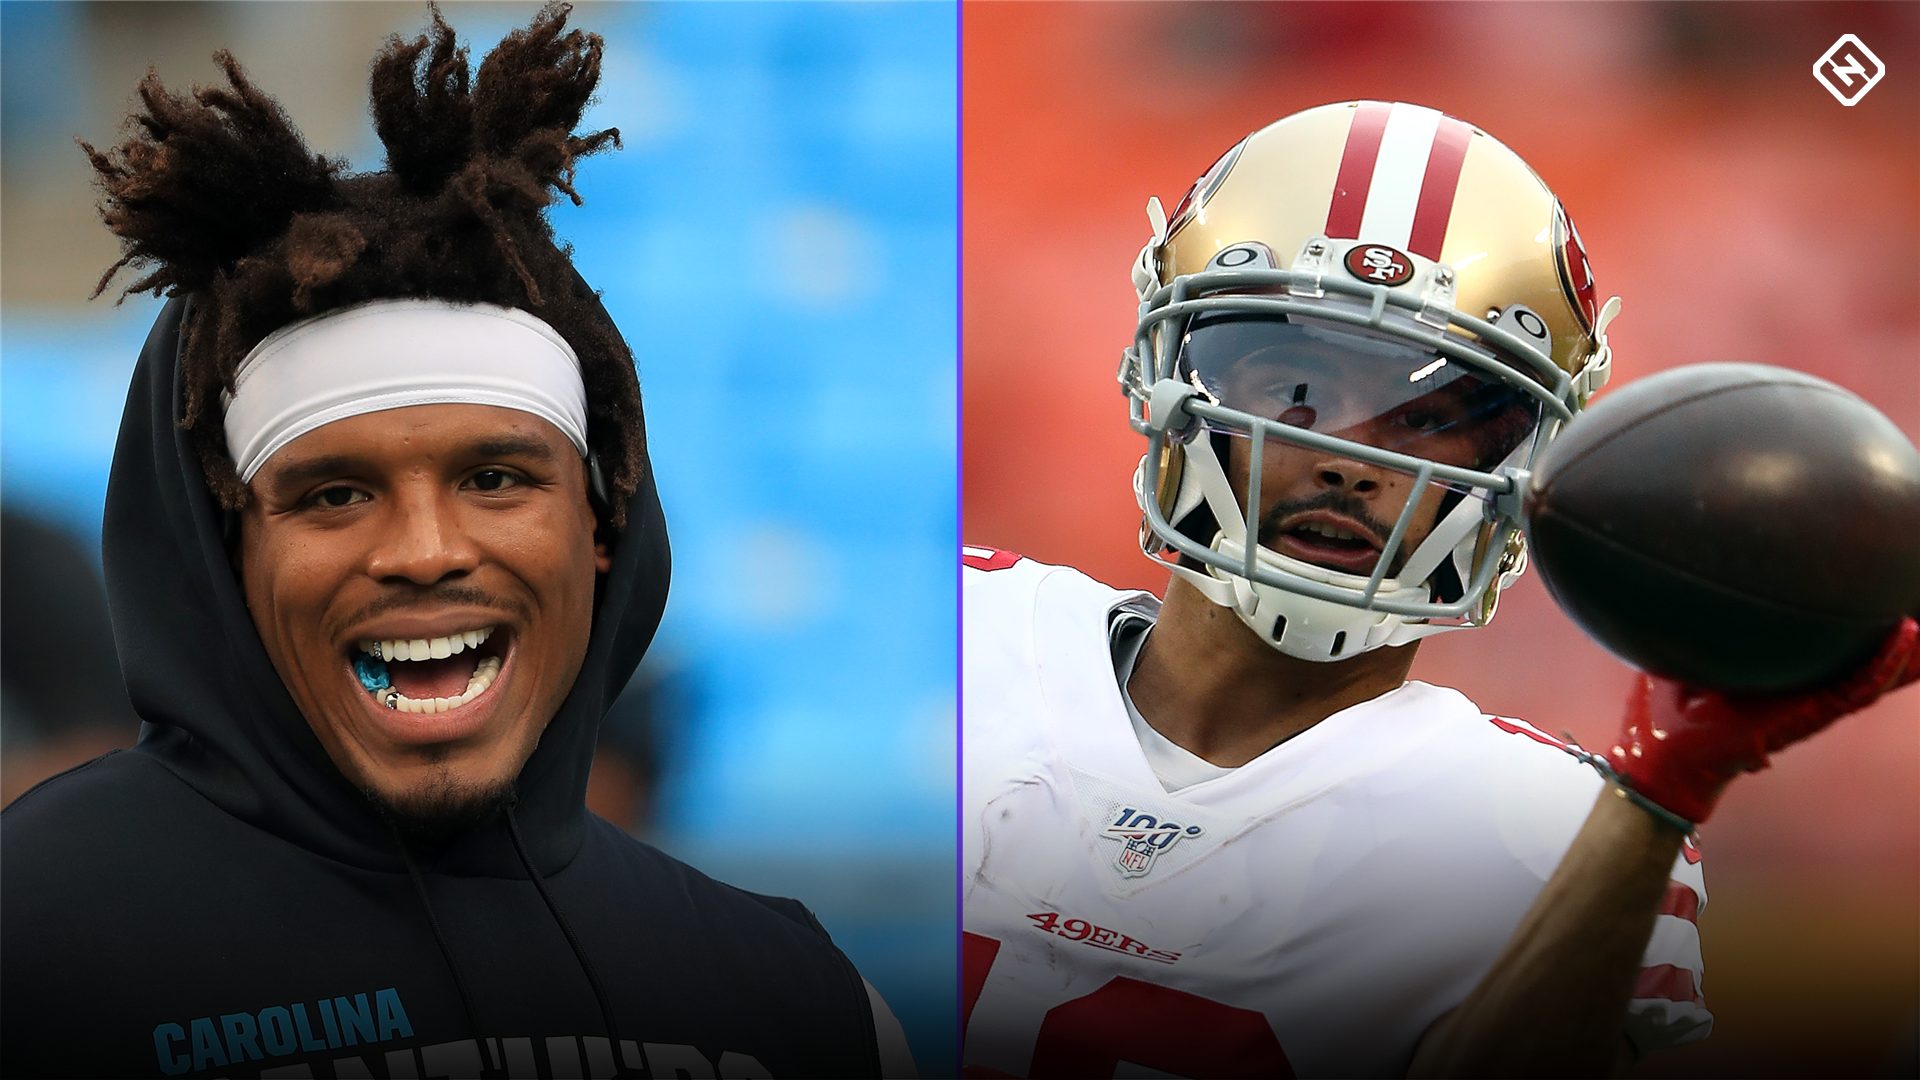 Fantasy Football Waiver Wire Watch List for Week 8: Streaming targets, free agent sleepers include Cam Newton, Dante Pettis